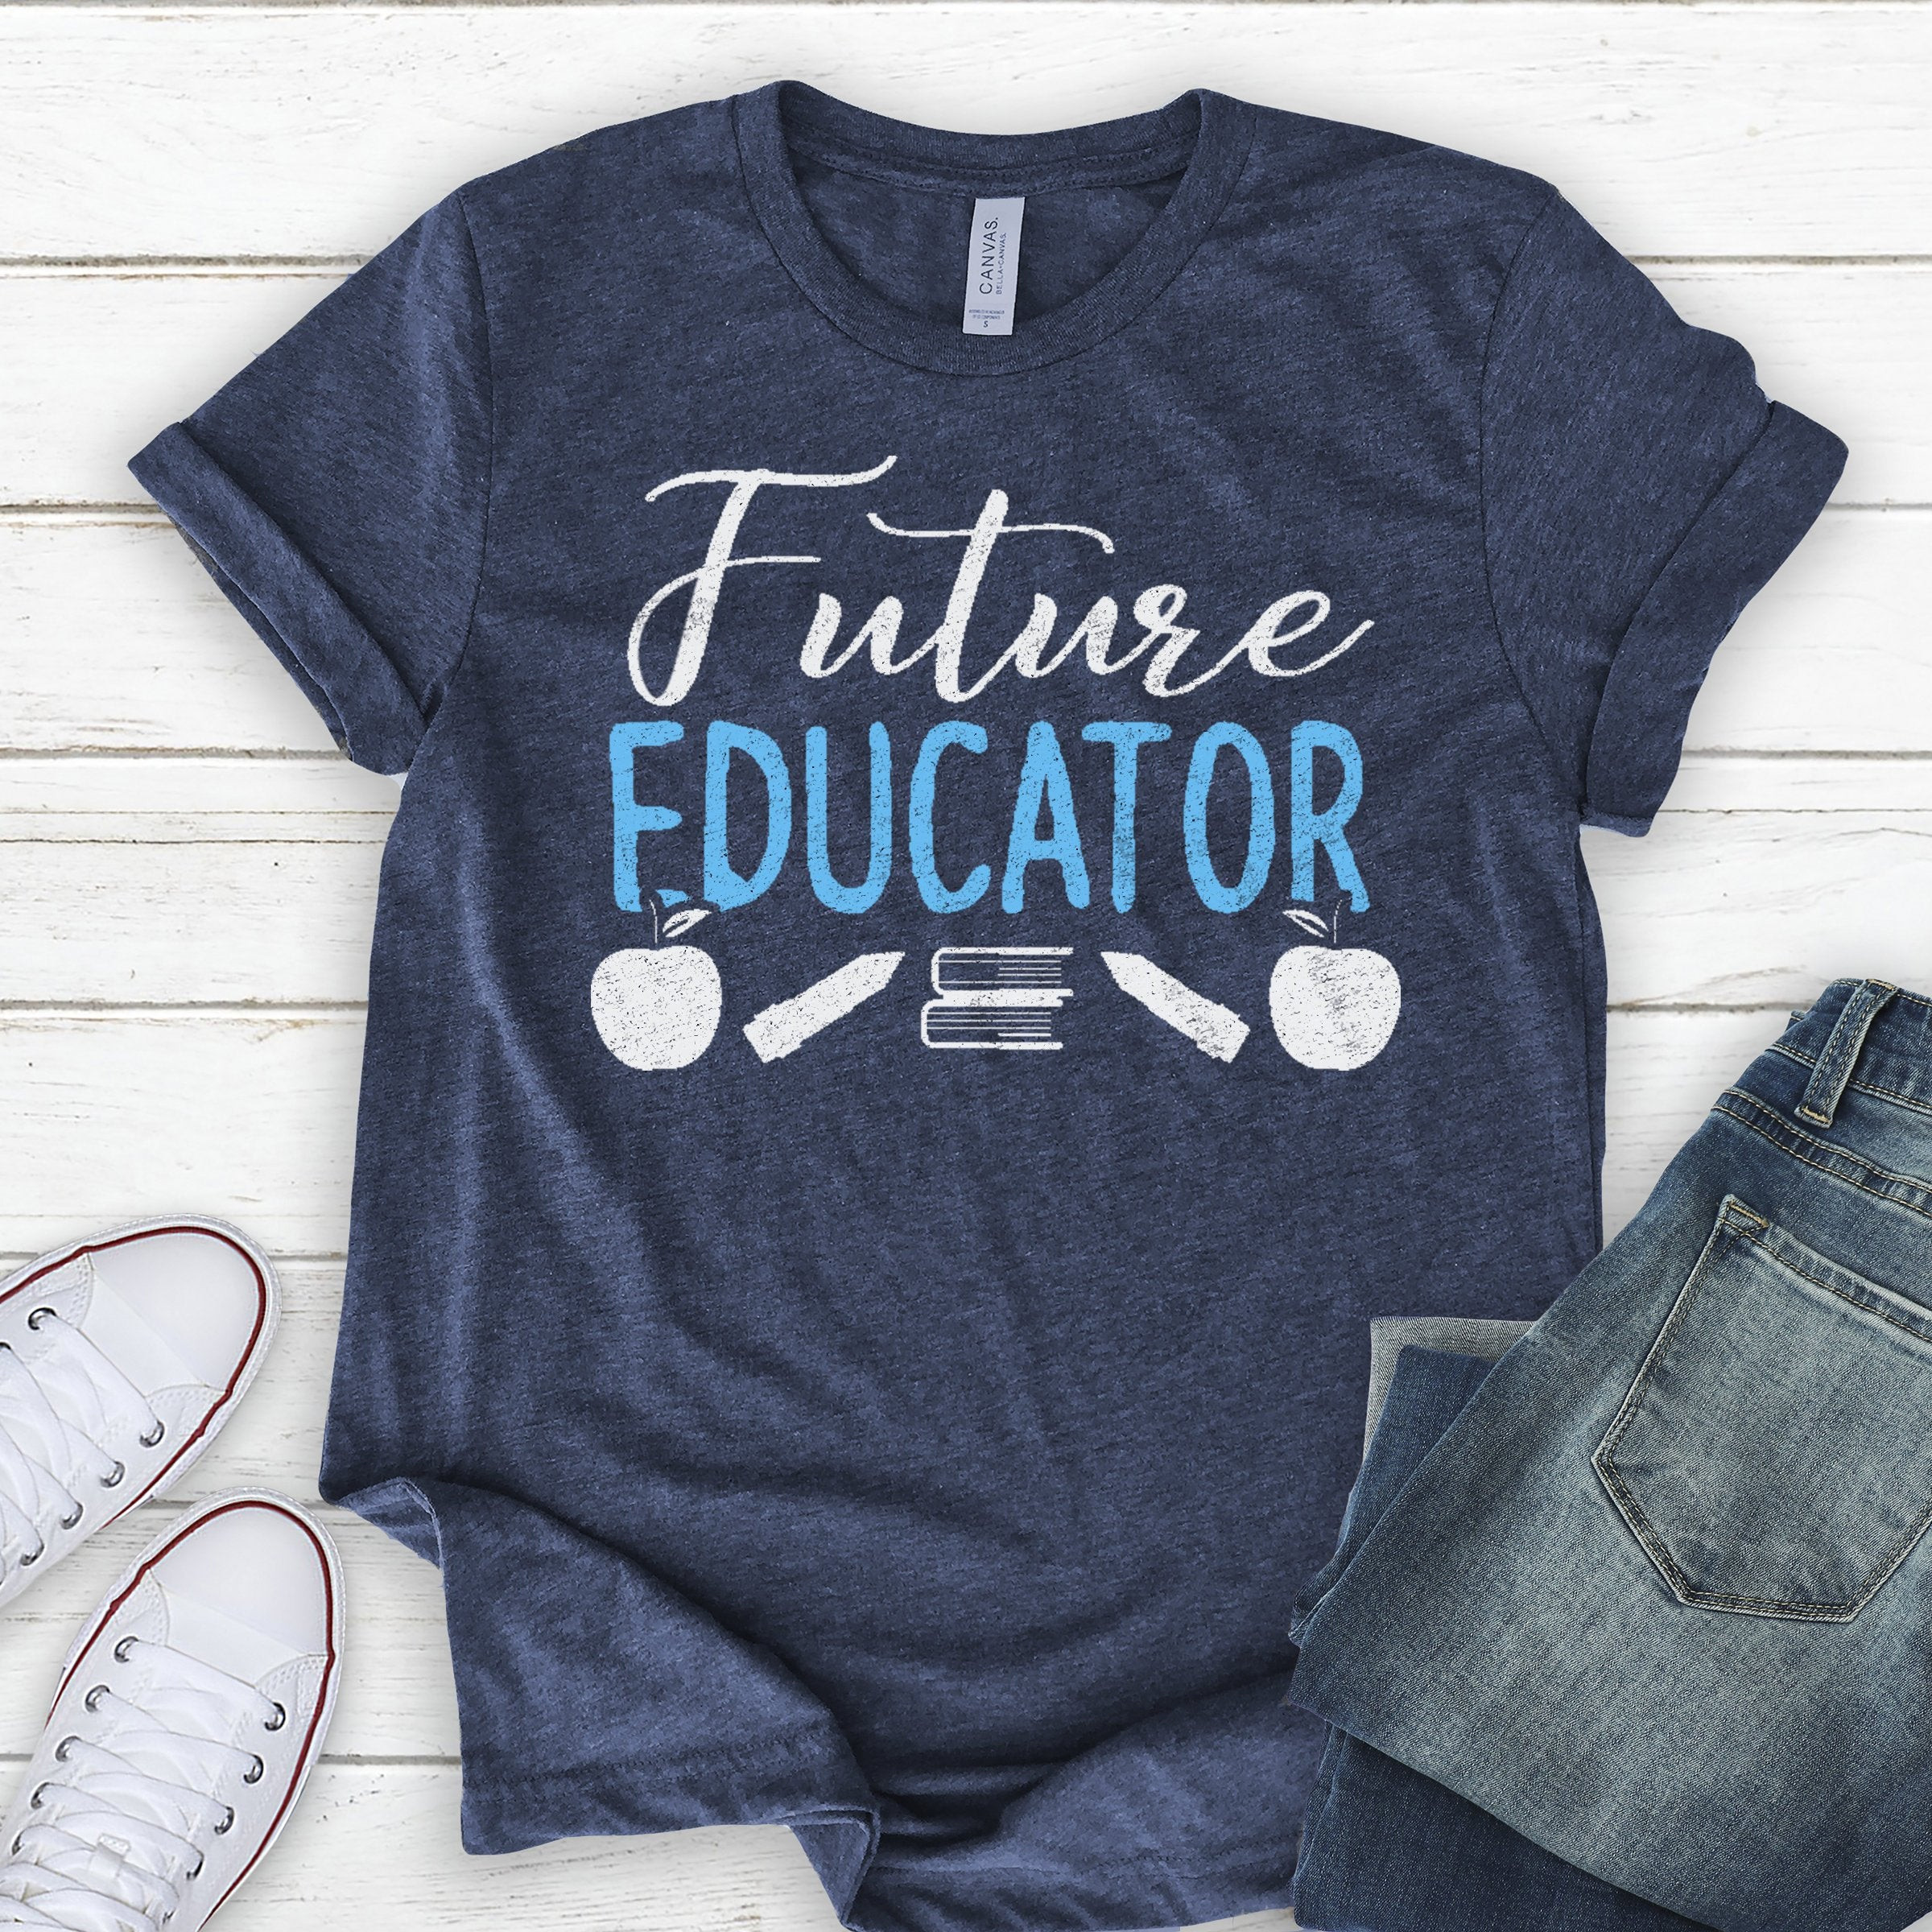 Graduation Gift Ideas For Teachers  Future Teacher School Shirt Graduation Gift Ideas College